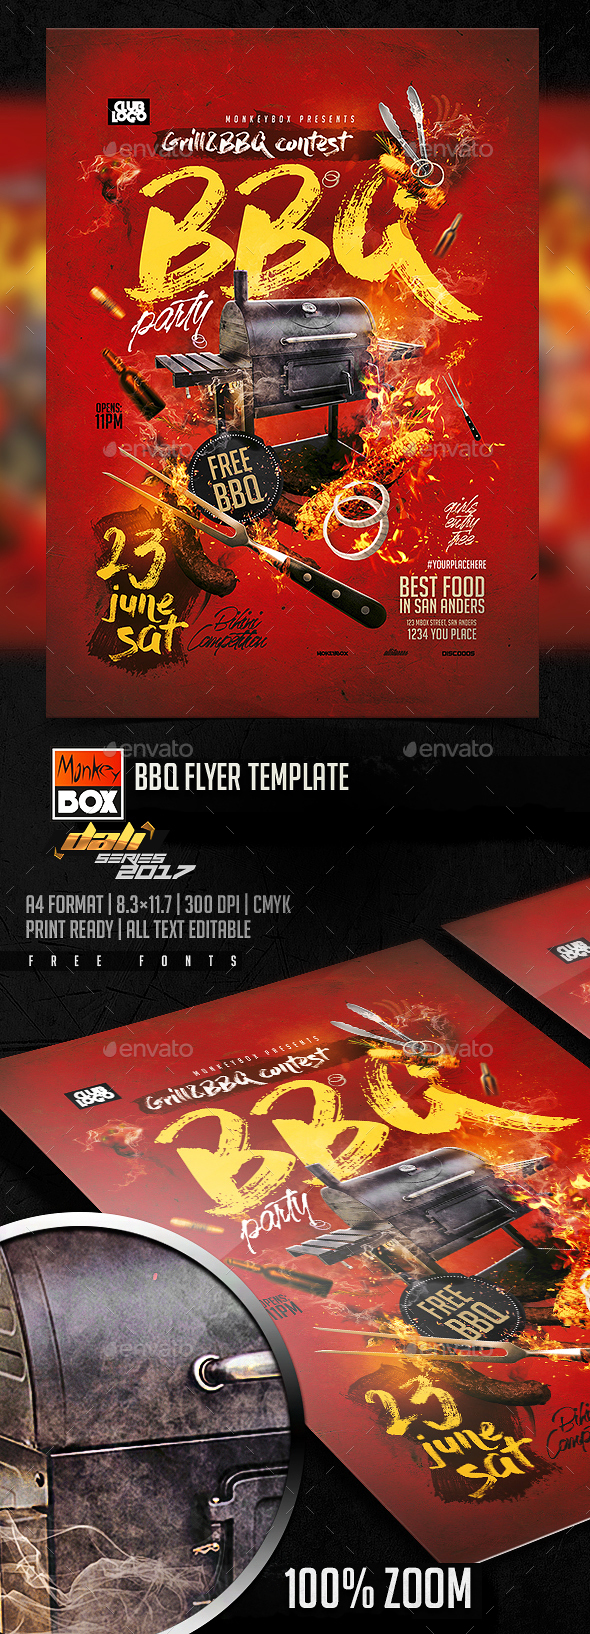 BBQ Flyer Template - Flyers Print Templates